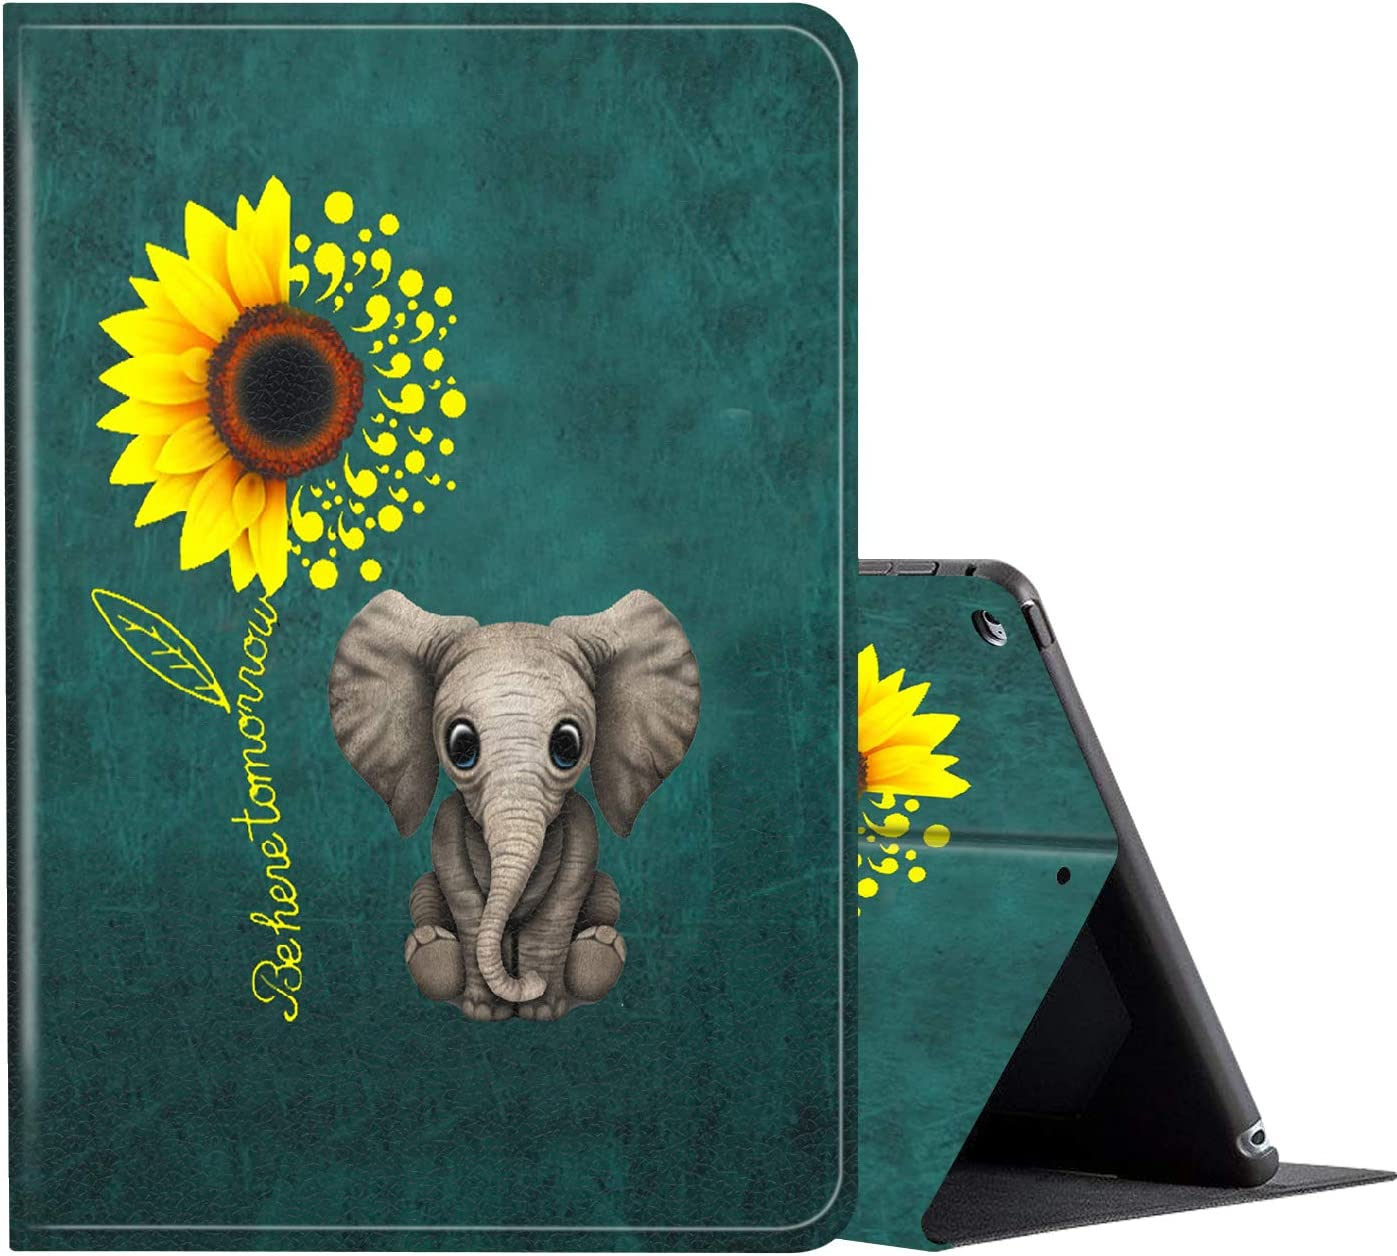 iPad 10.2 Case (2020/2019) 8th/7th Generation ipad Case,Amook Adjustable Non-Slip Folio Stand with Auto Wake/Sleep Smart Cover for New Apple iPad 8/7 Gen 10.2 inch-Baby Elephant and Sunflower